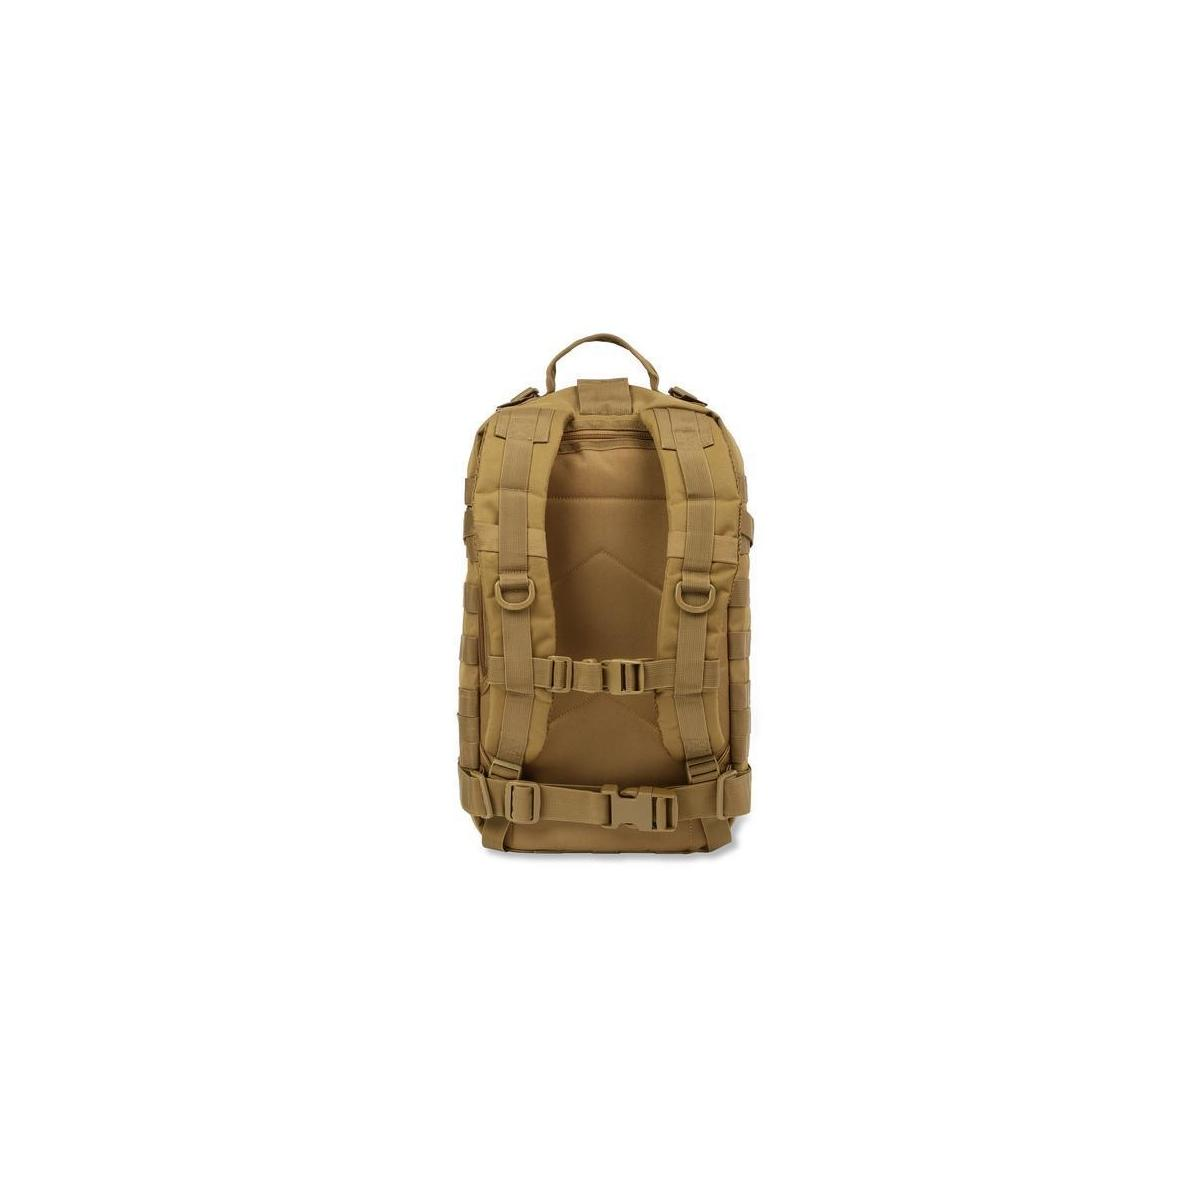 Orca Tactical 34L Molle Backpack Military Assault Pack Survival Bag